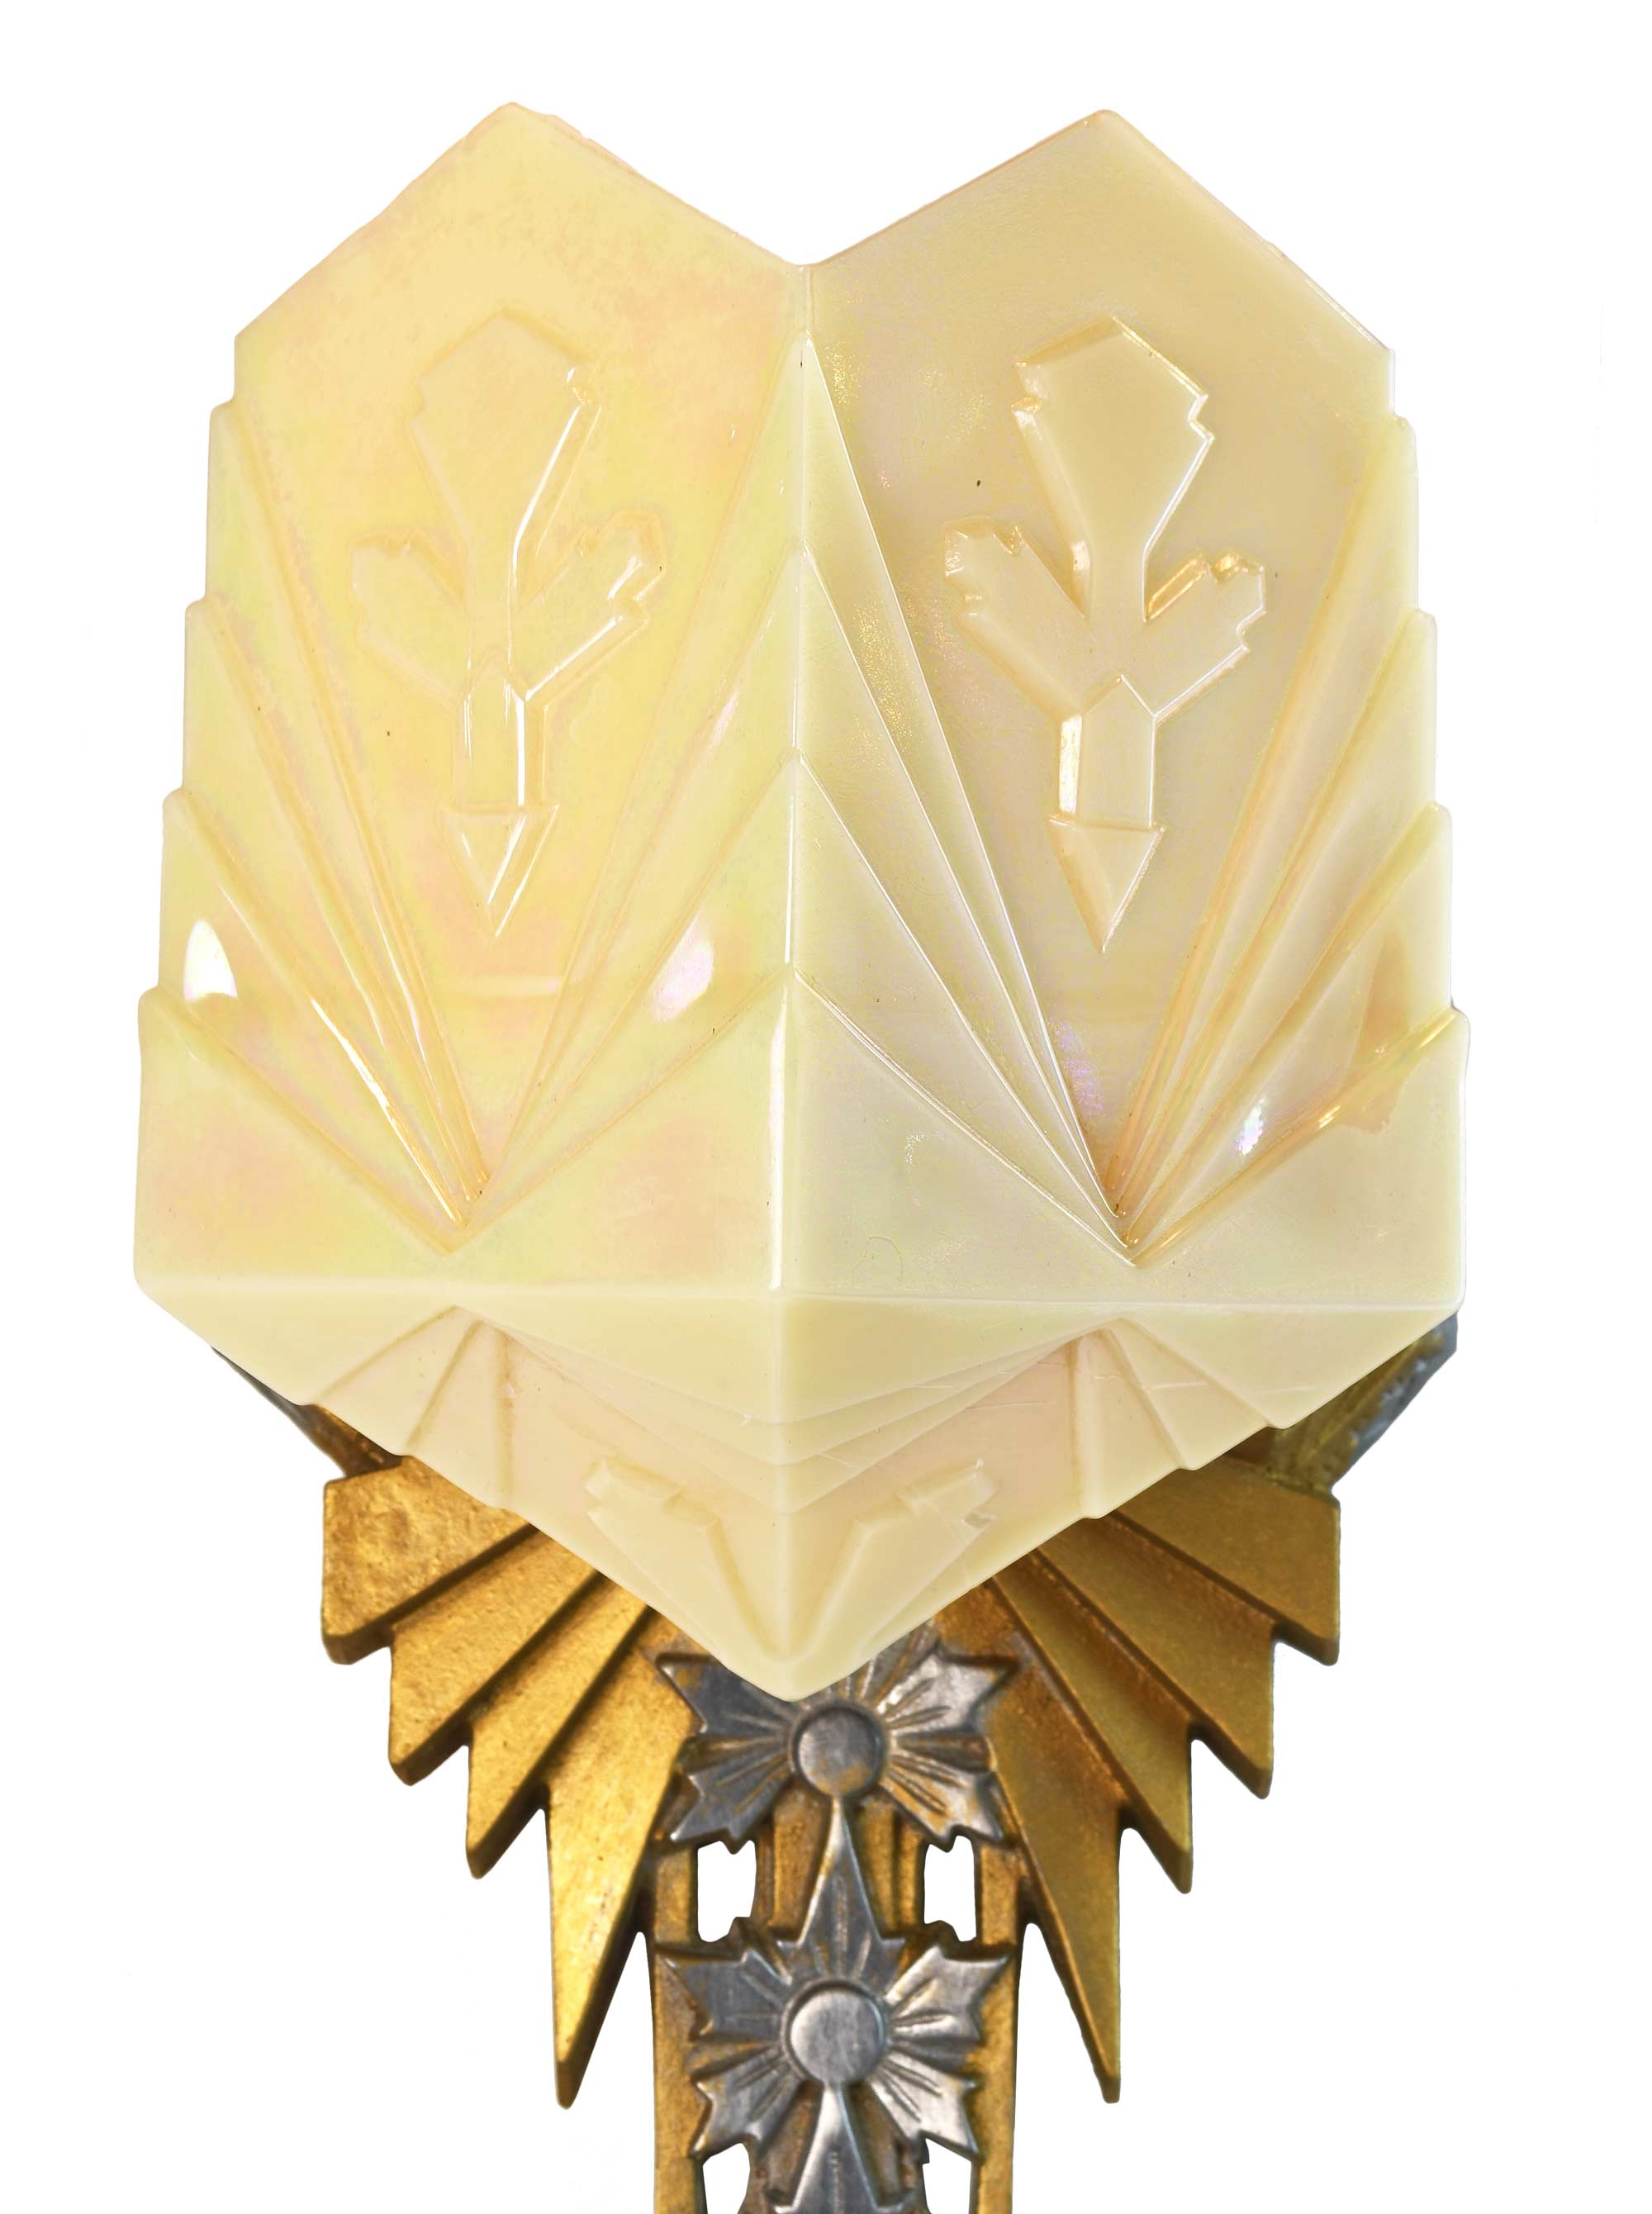 46651-art-deco-sconce-with-molded-custard-glass-shade.jpg